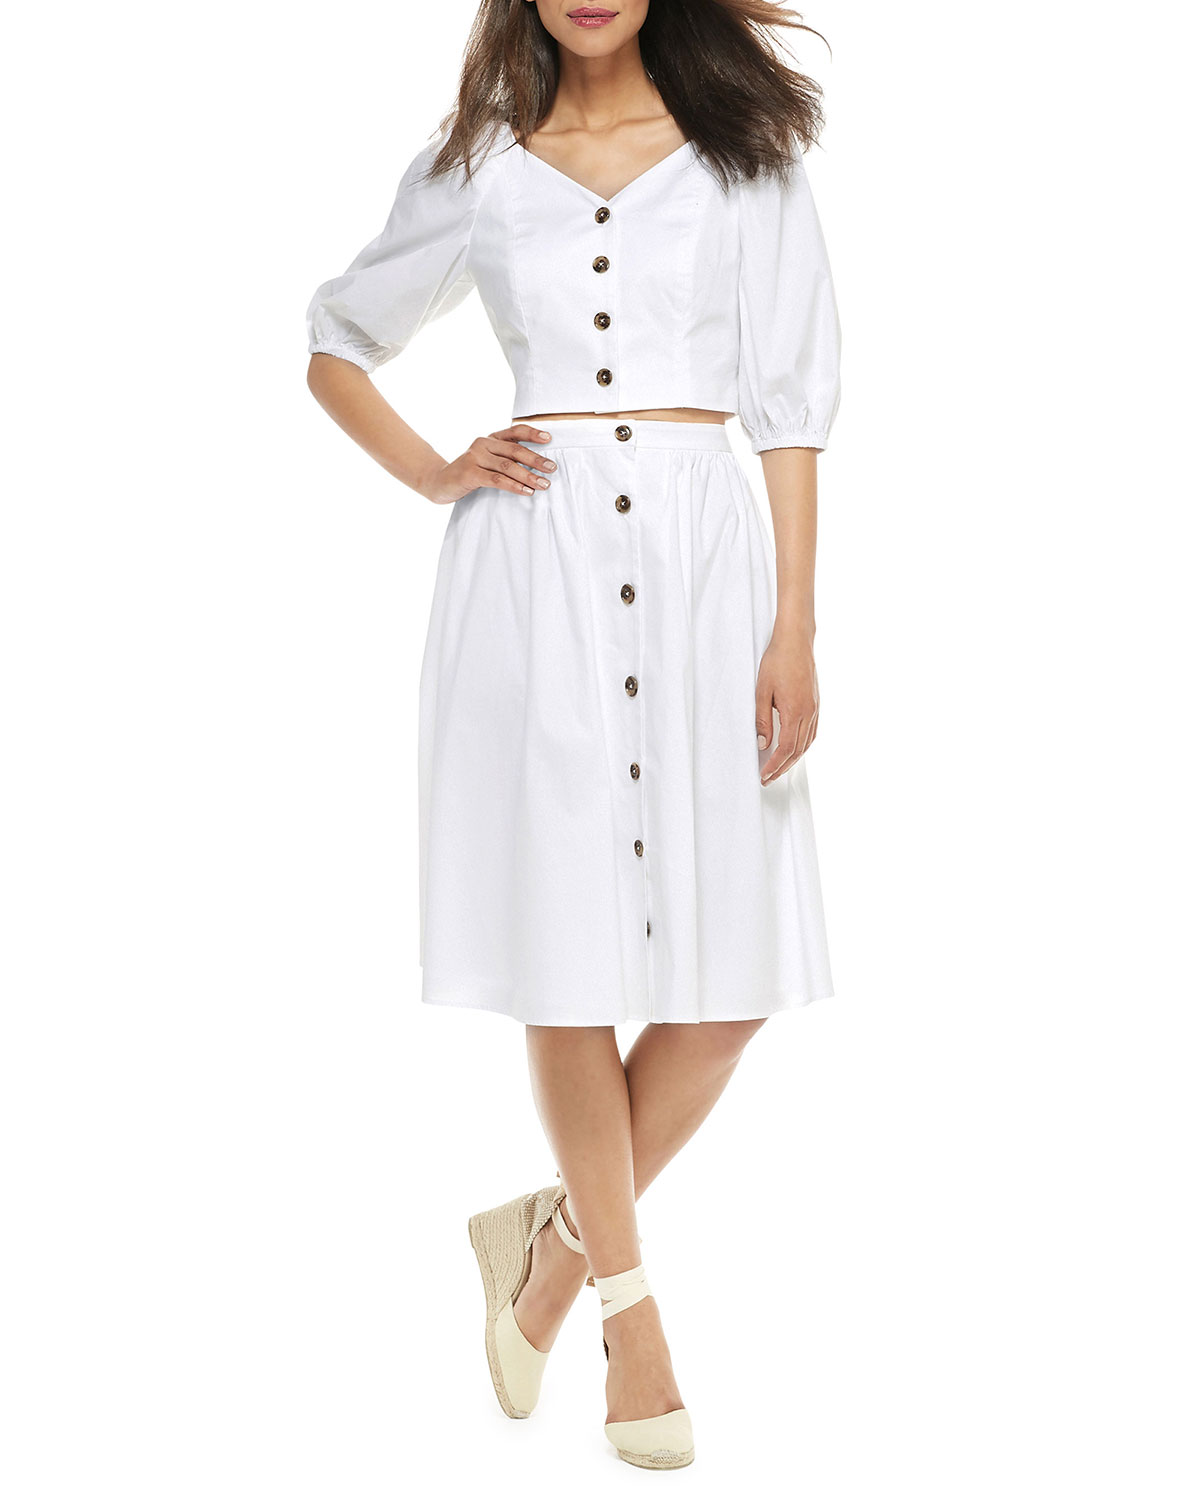 Gal Meets Glam Collection Two-Piece Button-Up A-Line Dress Set w/ Crop Top & Skirt